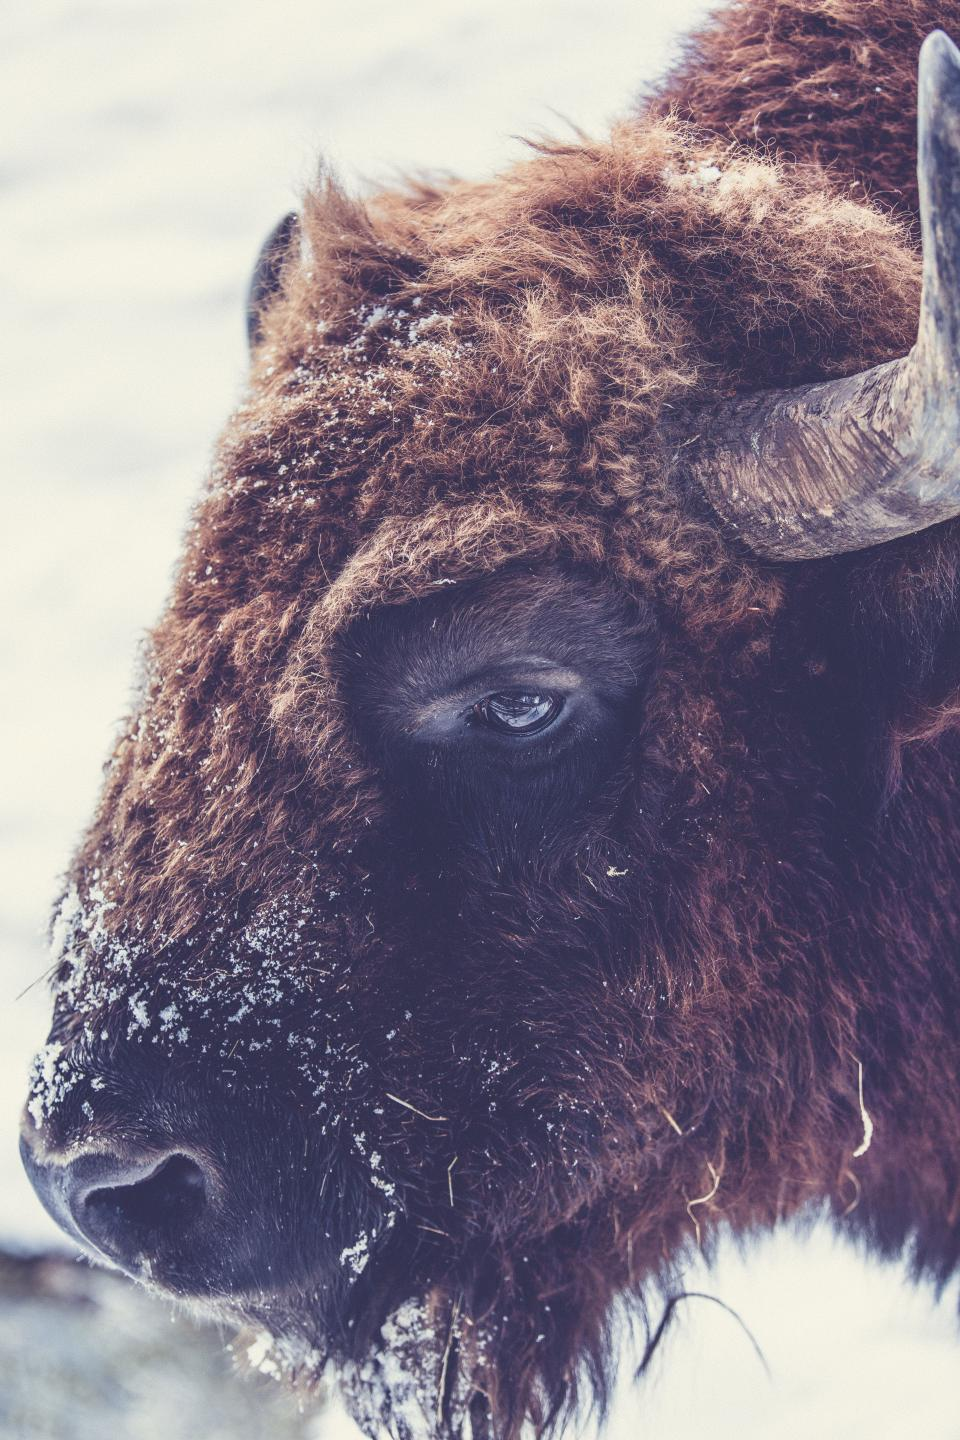 ram animal wildlife snow winter cold weather wool horns brown